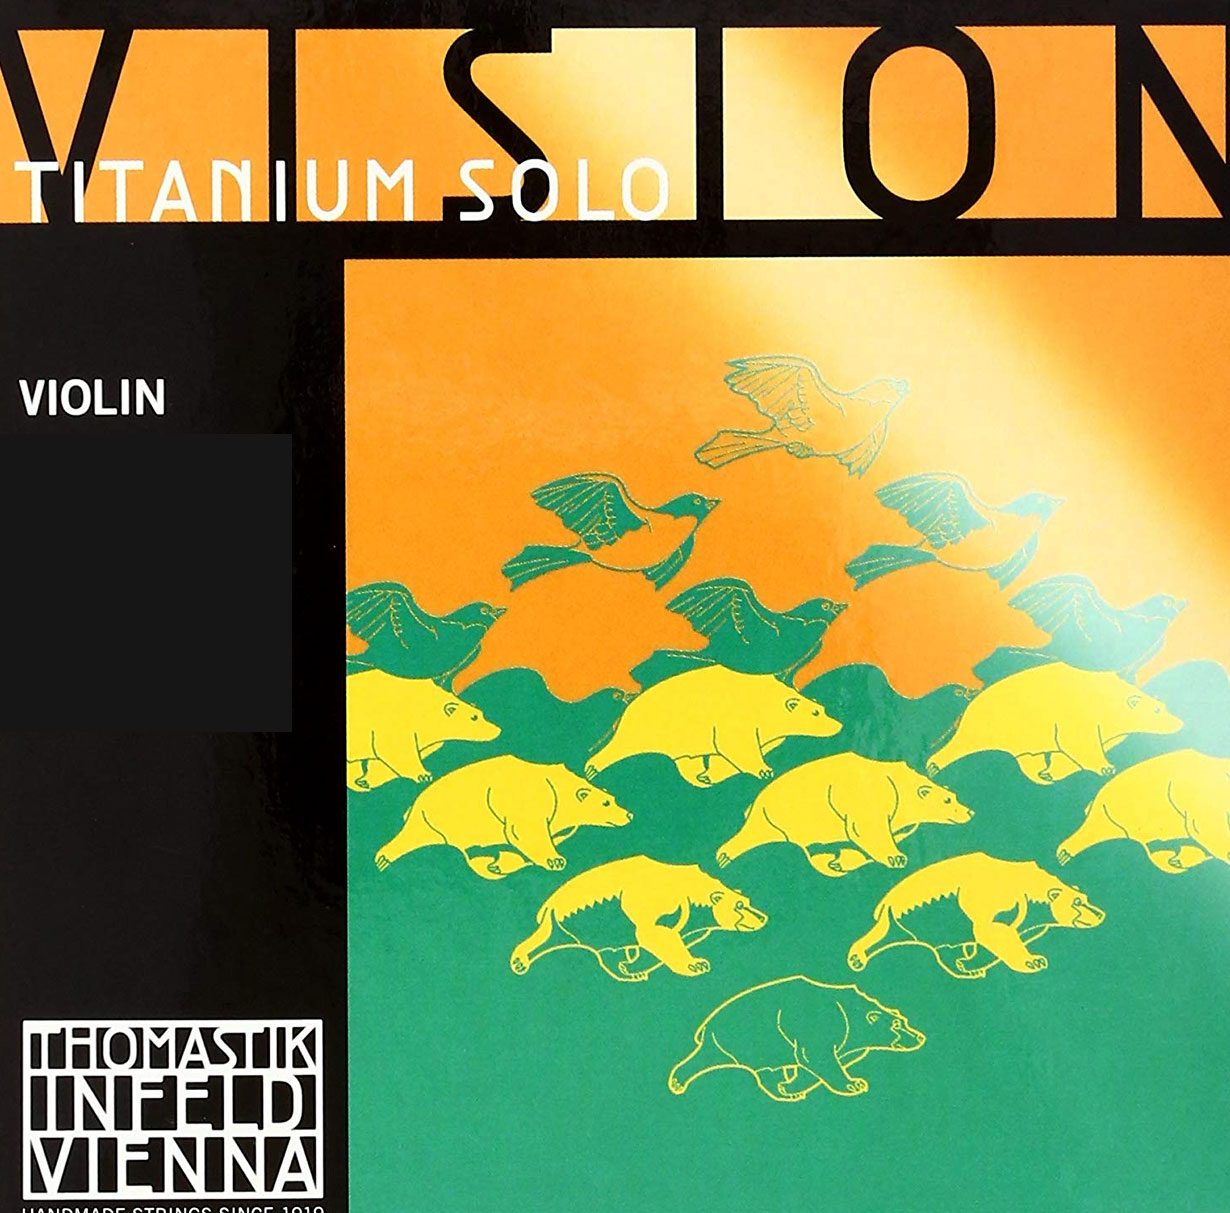 Thomastik Infeld Vision Titanium Violin String Set